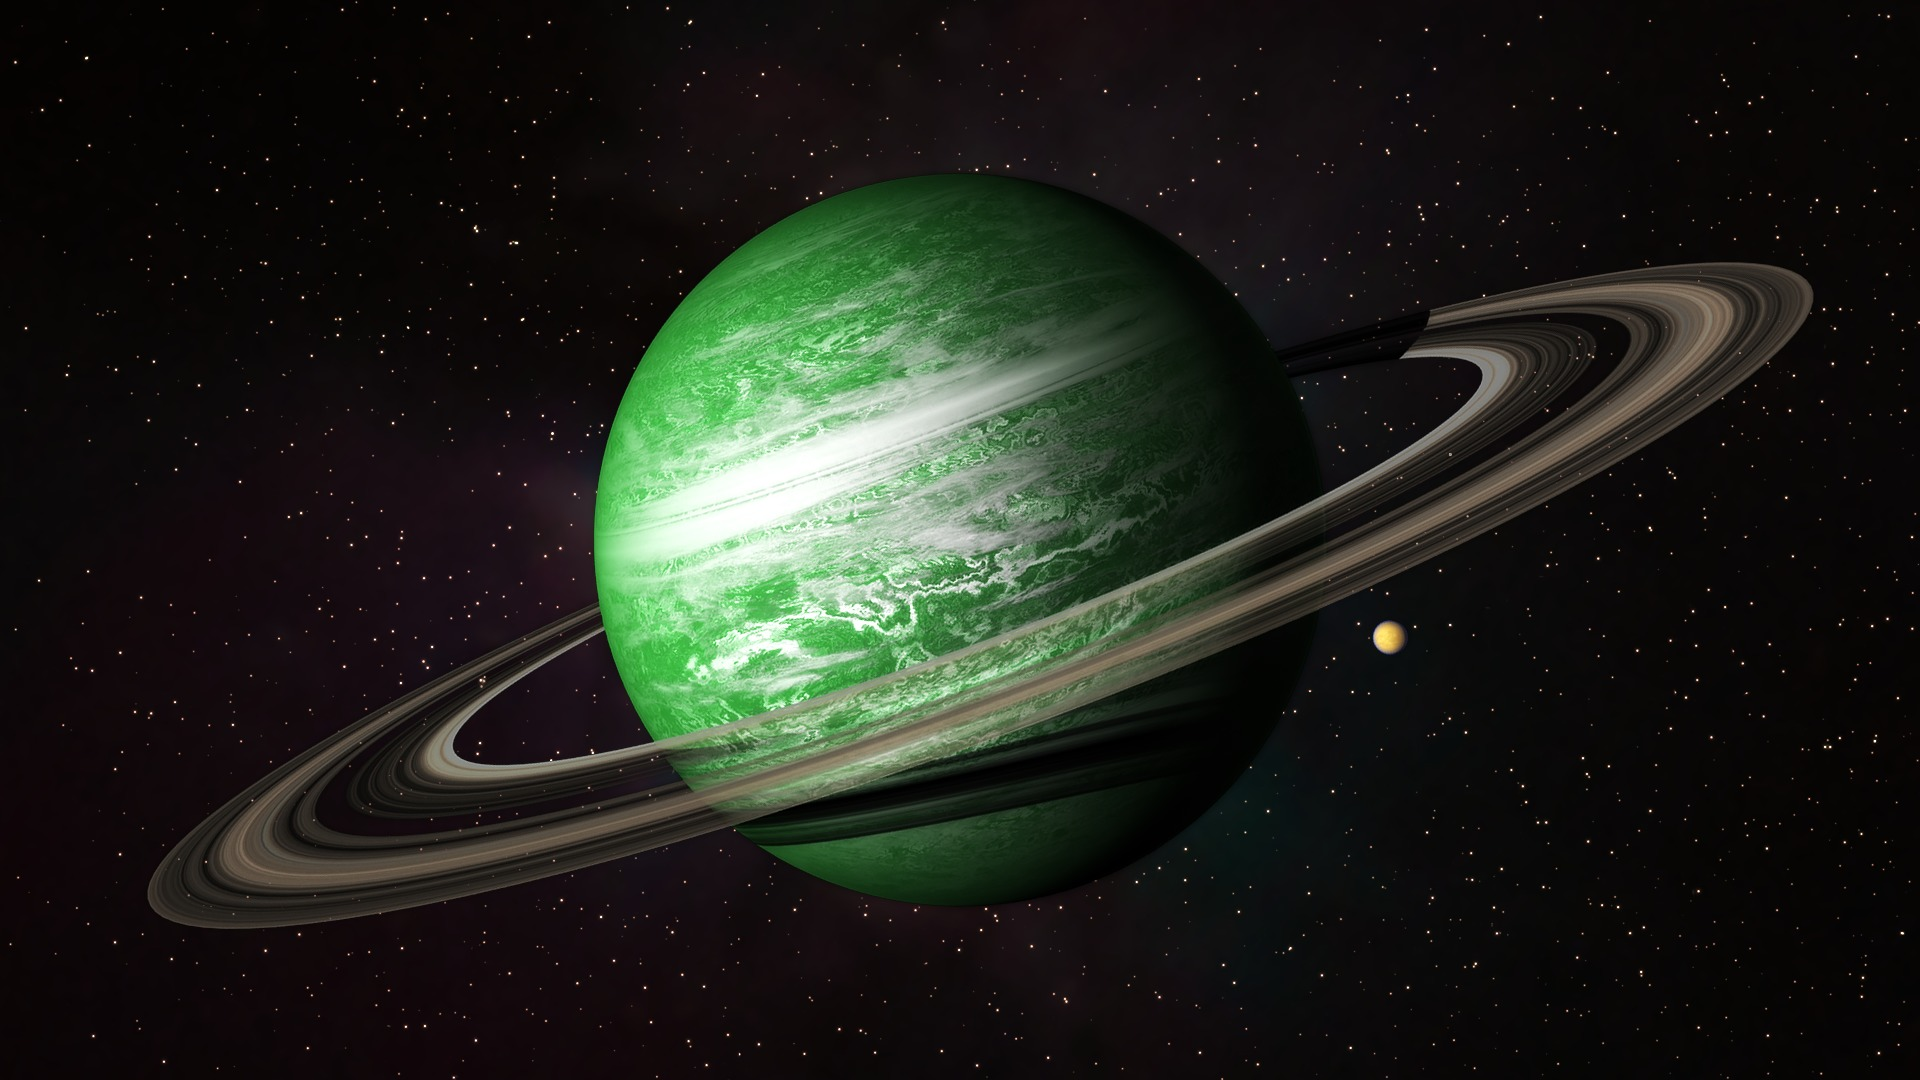 wallpaper.wiki-Green-Planet-Wallpaper-In-Space-Wallpaper ...